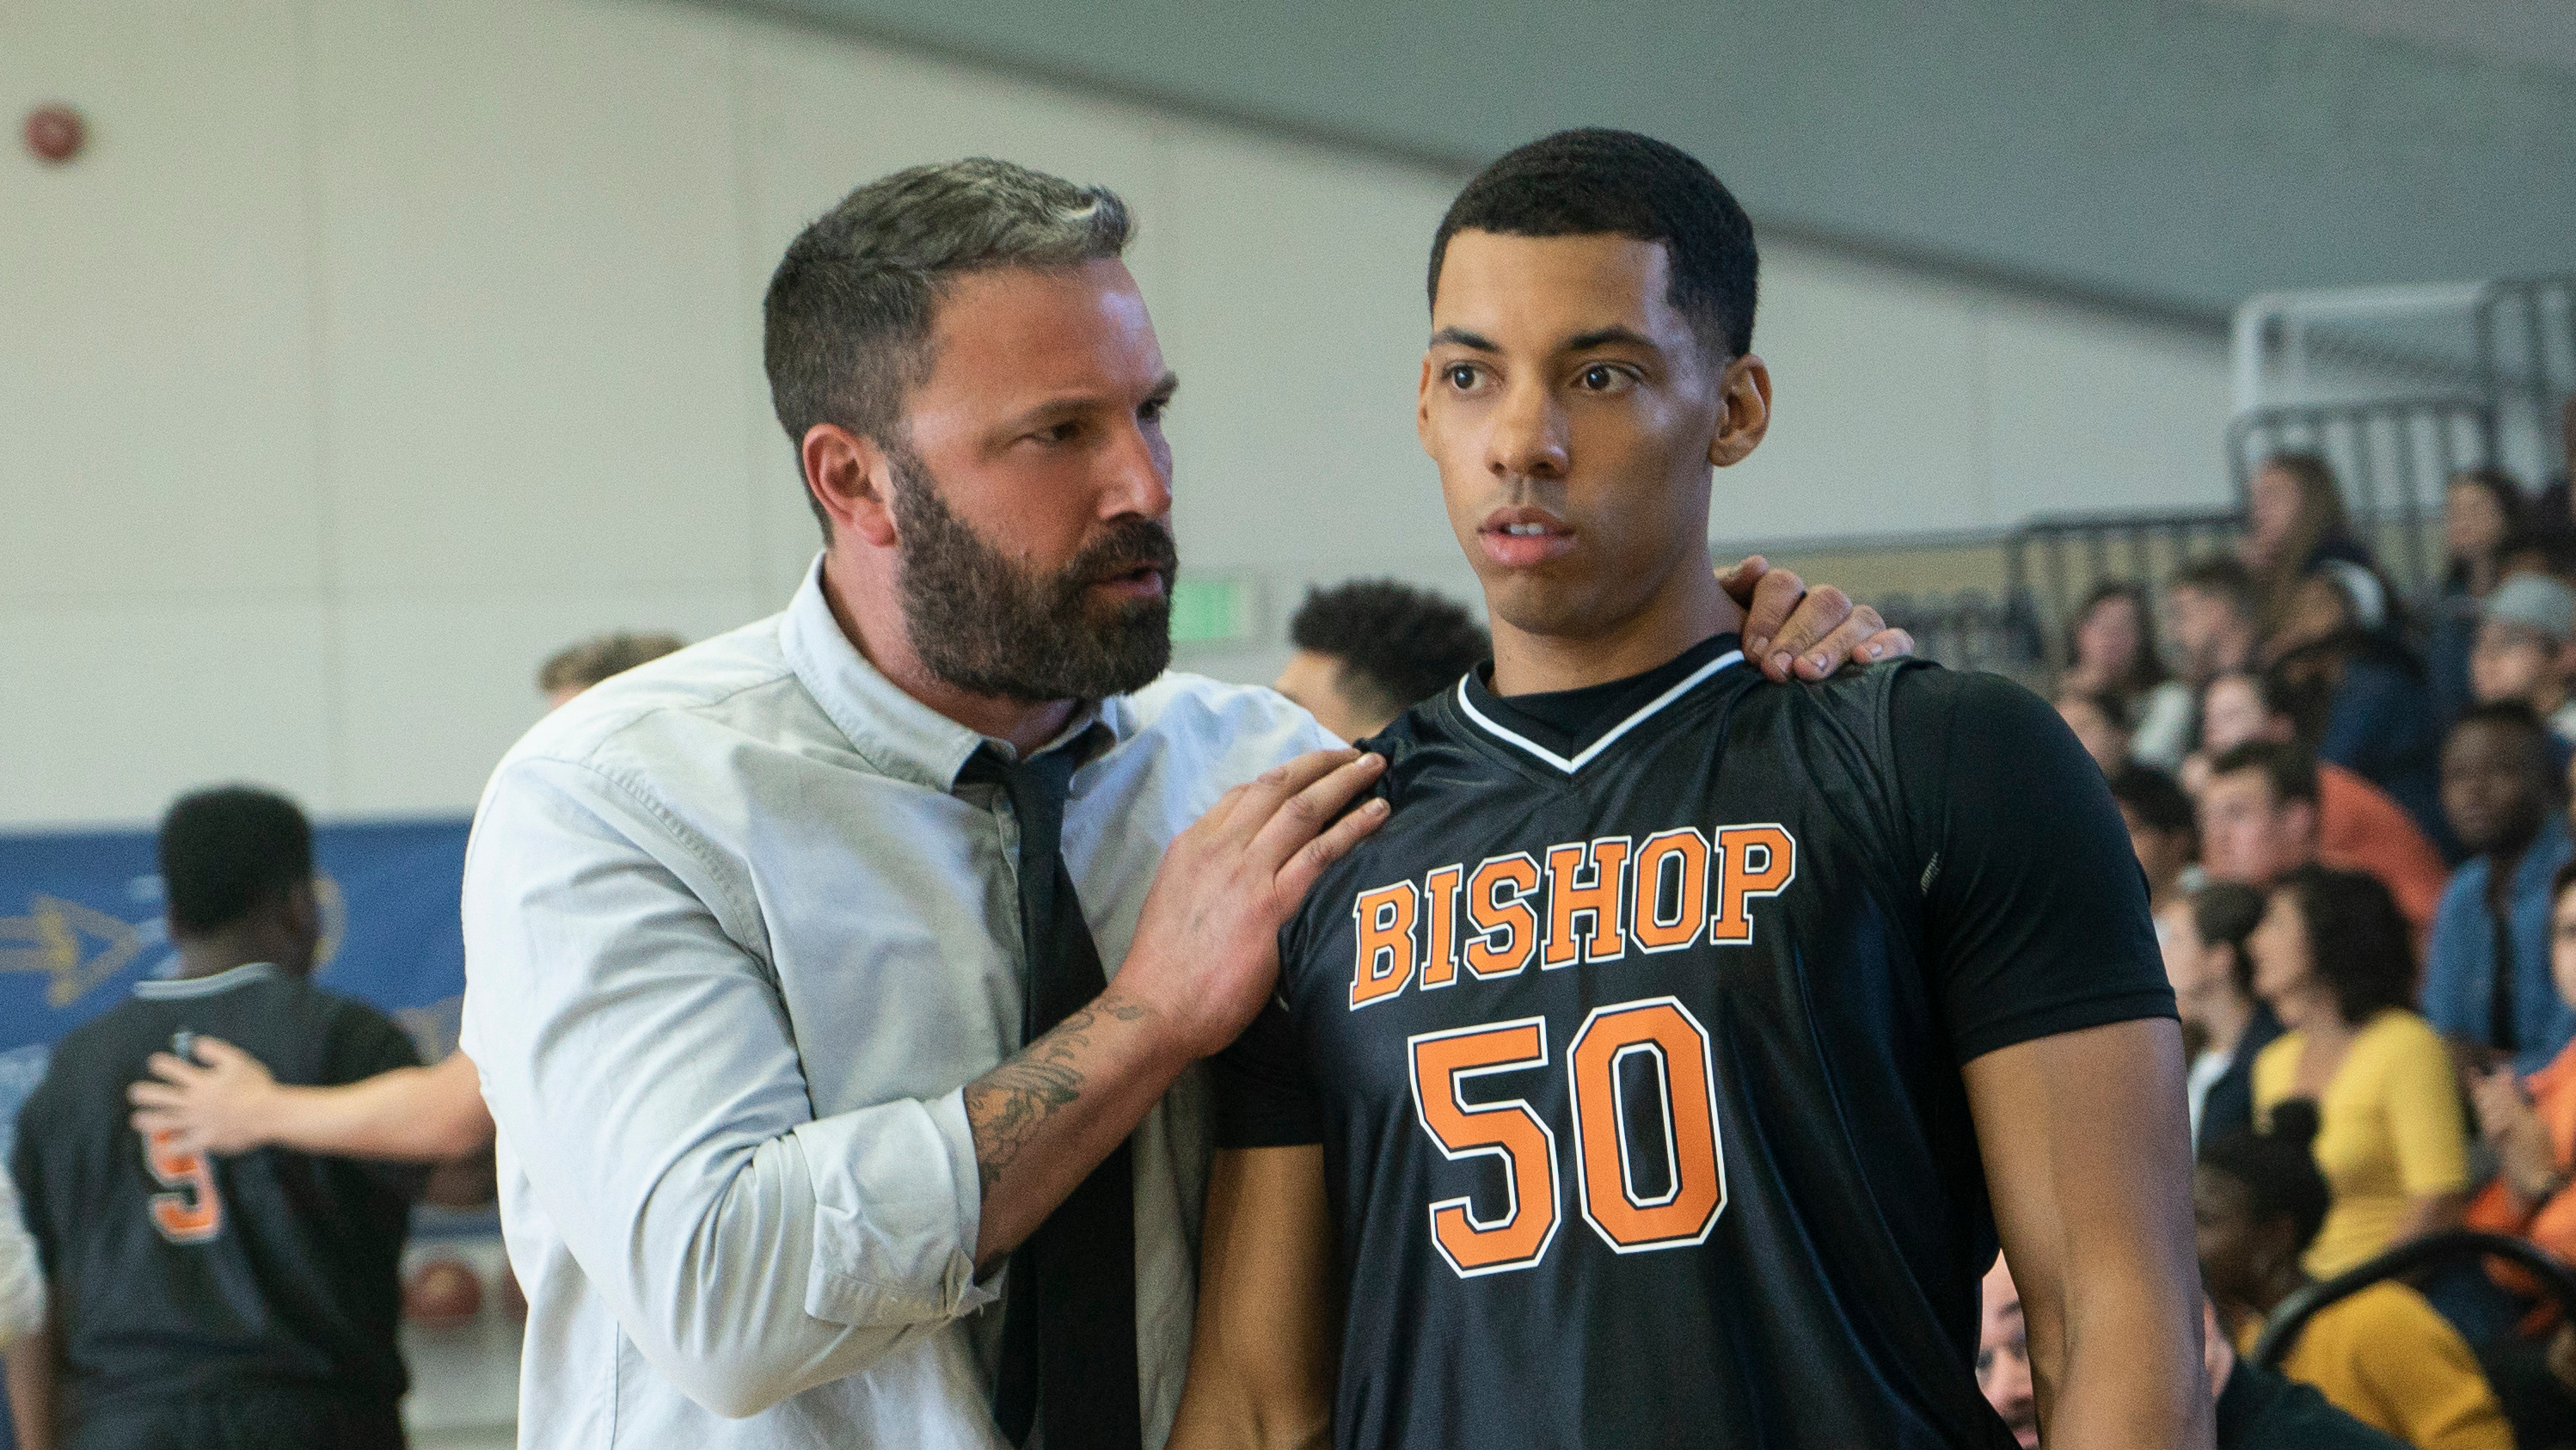 Ben Affleck's 'The Way Back' Releasing on Demand Early - Variety